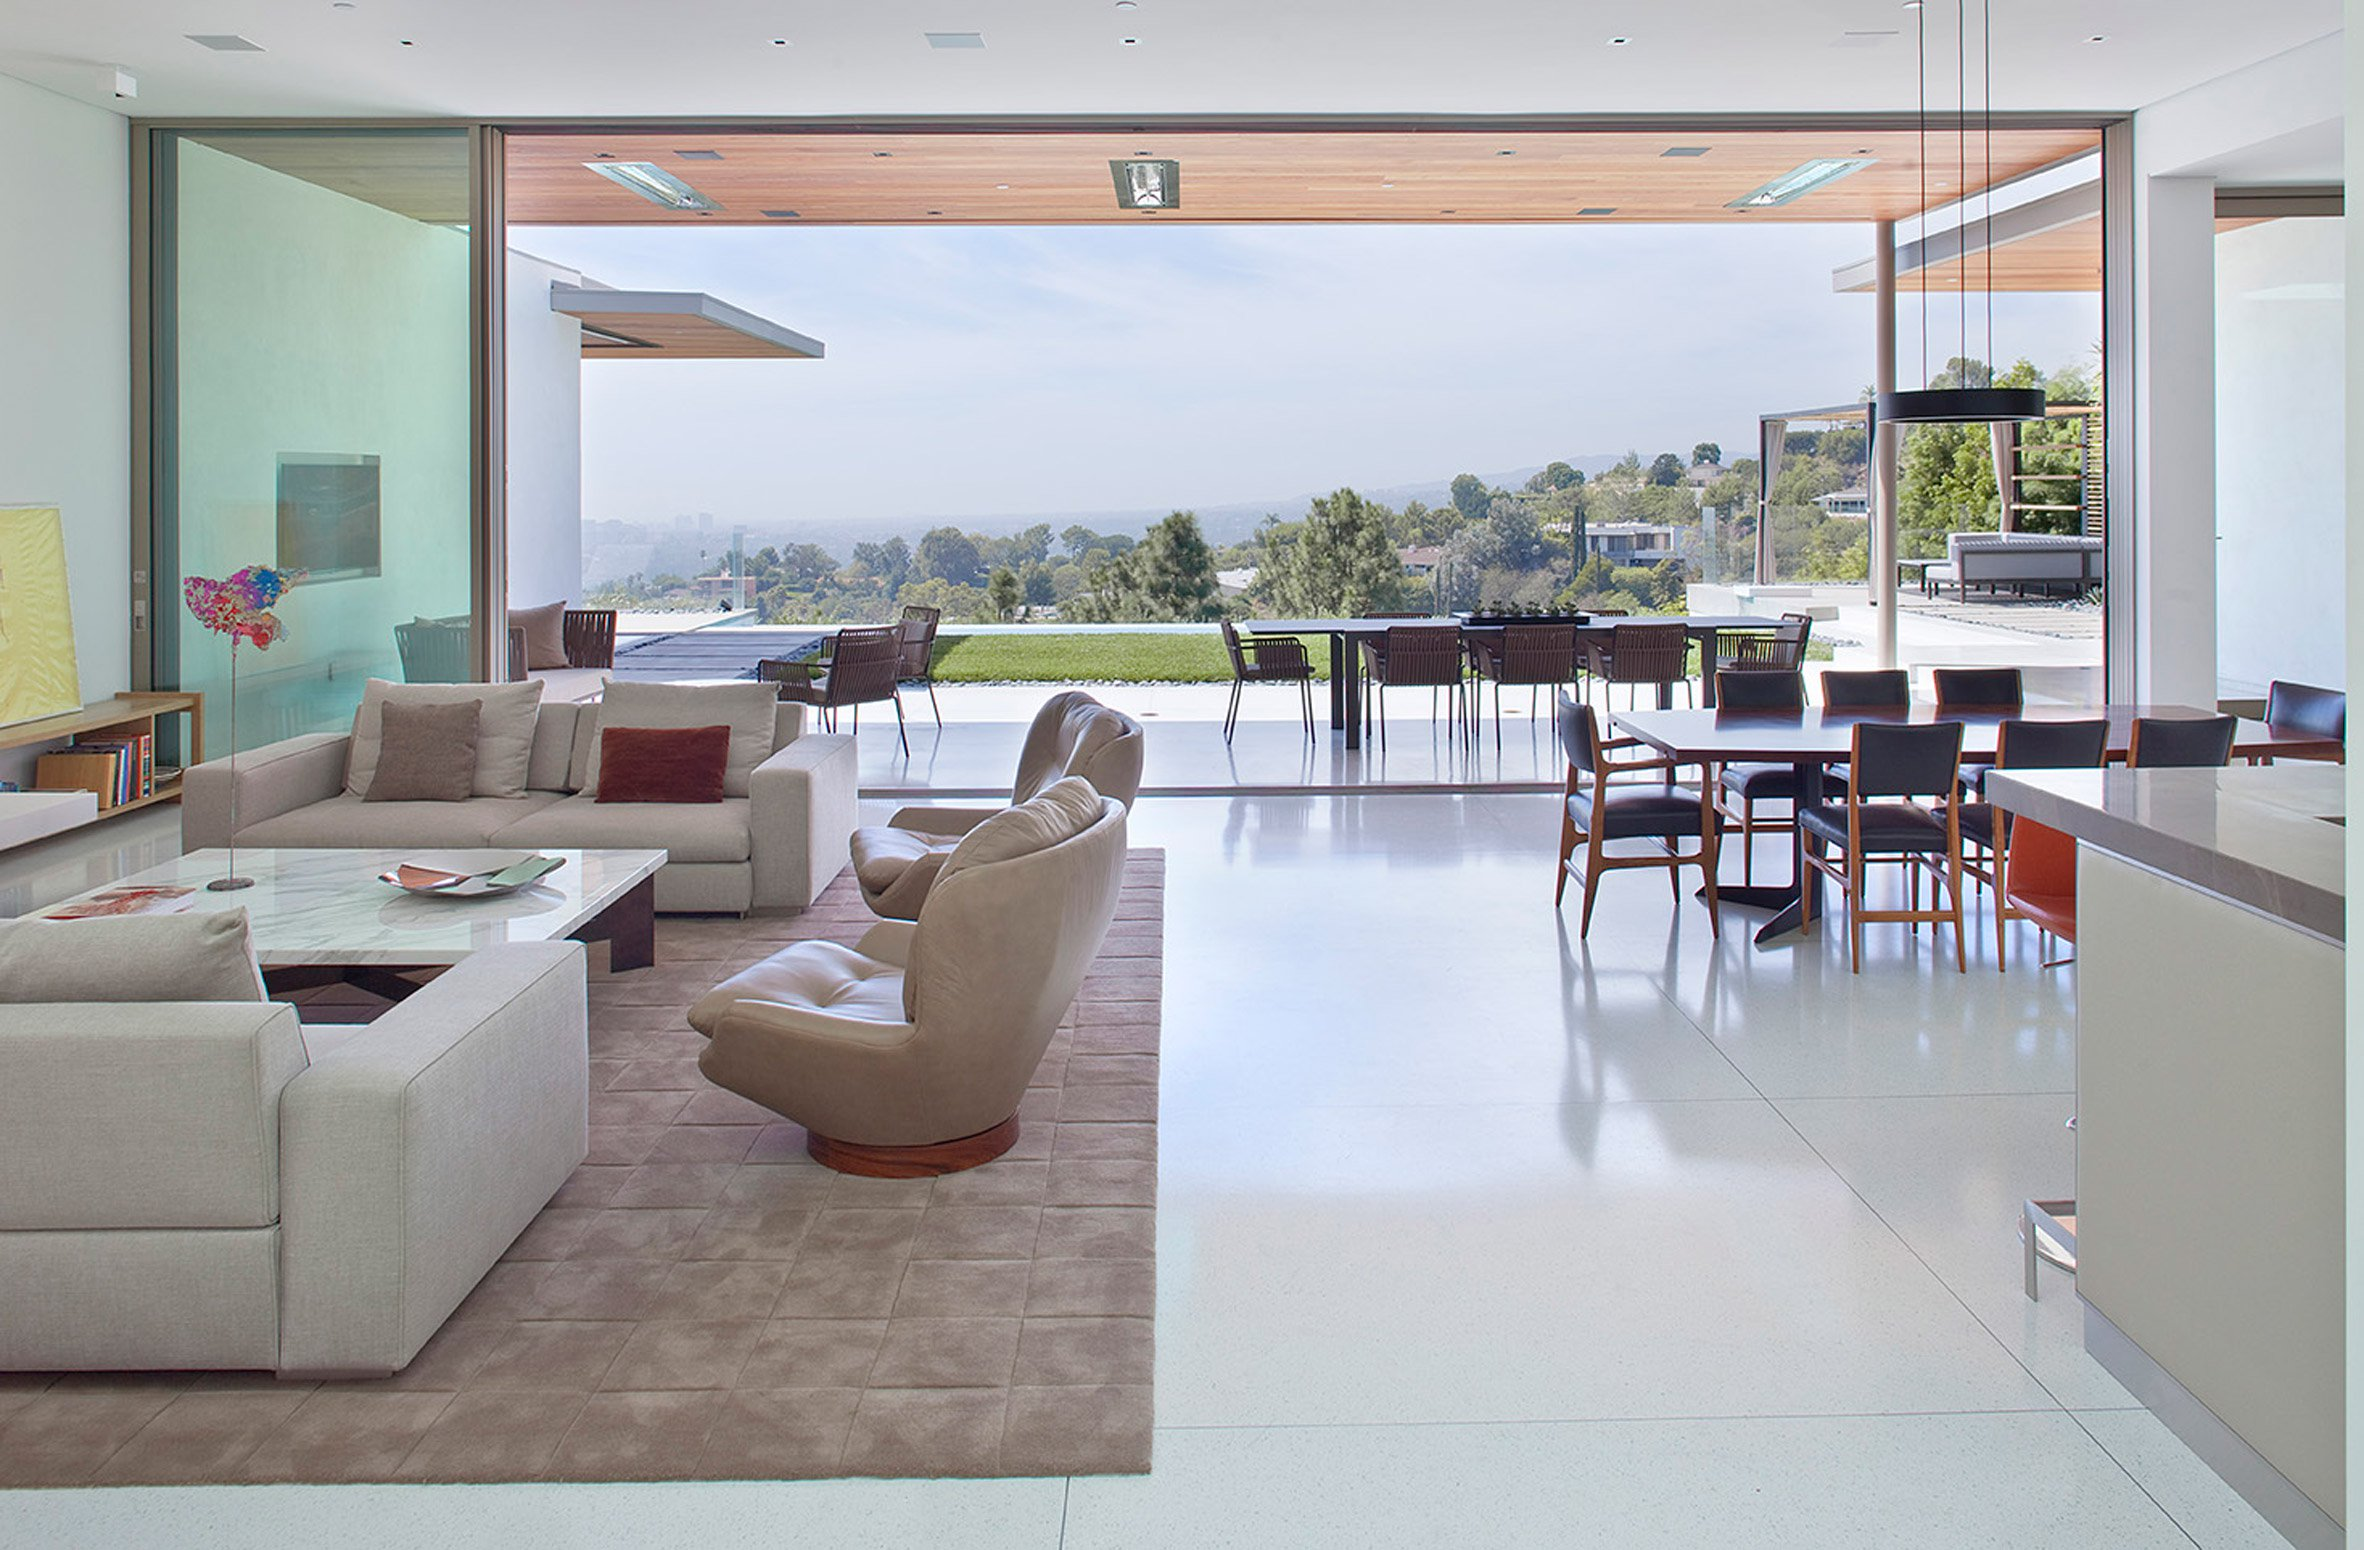 outdoor dining zone connected to indoors